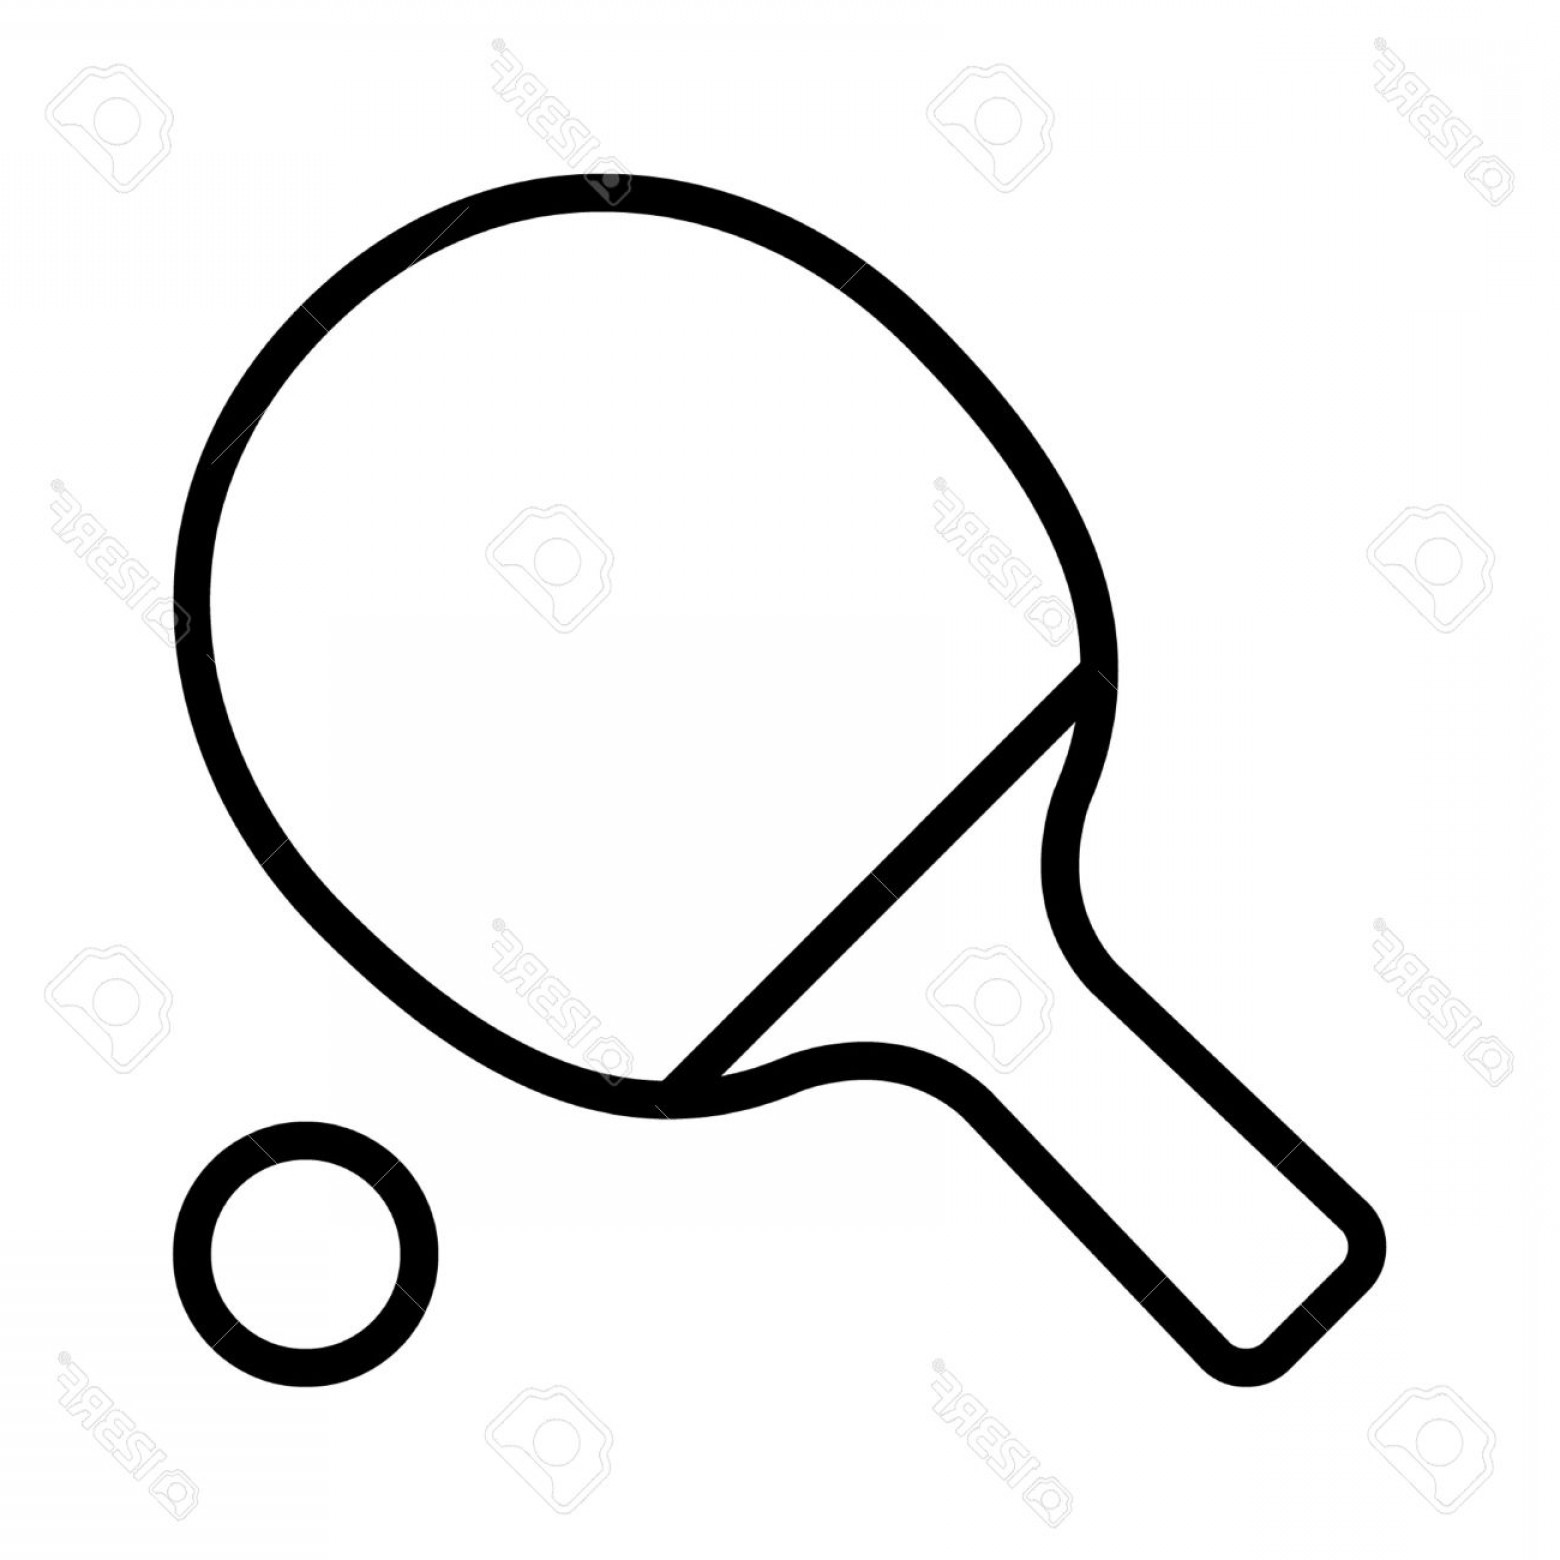 Paddle Vector Art: Photostock Vector Ping Pong Table Tennis Paddle With Ball Line Art Icon